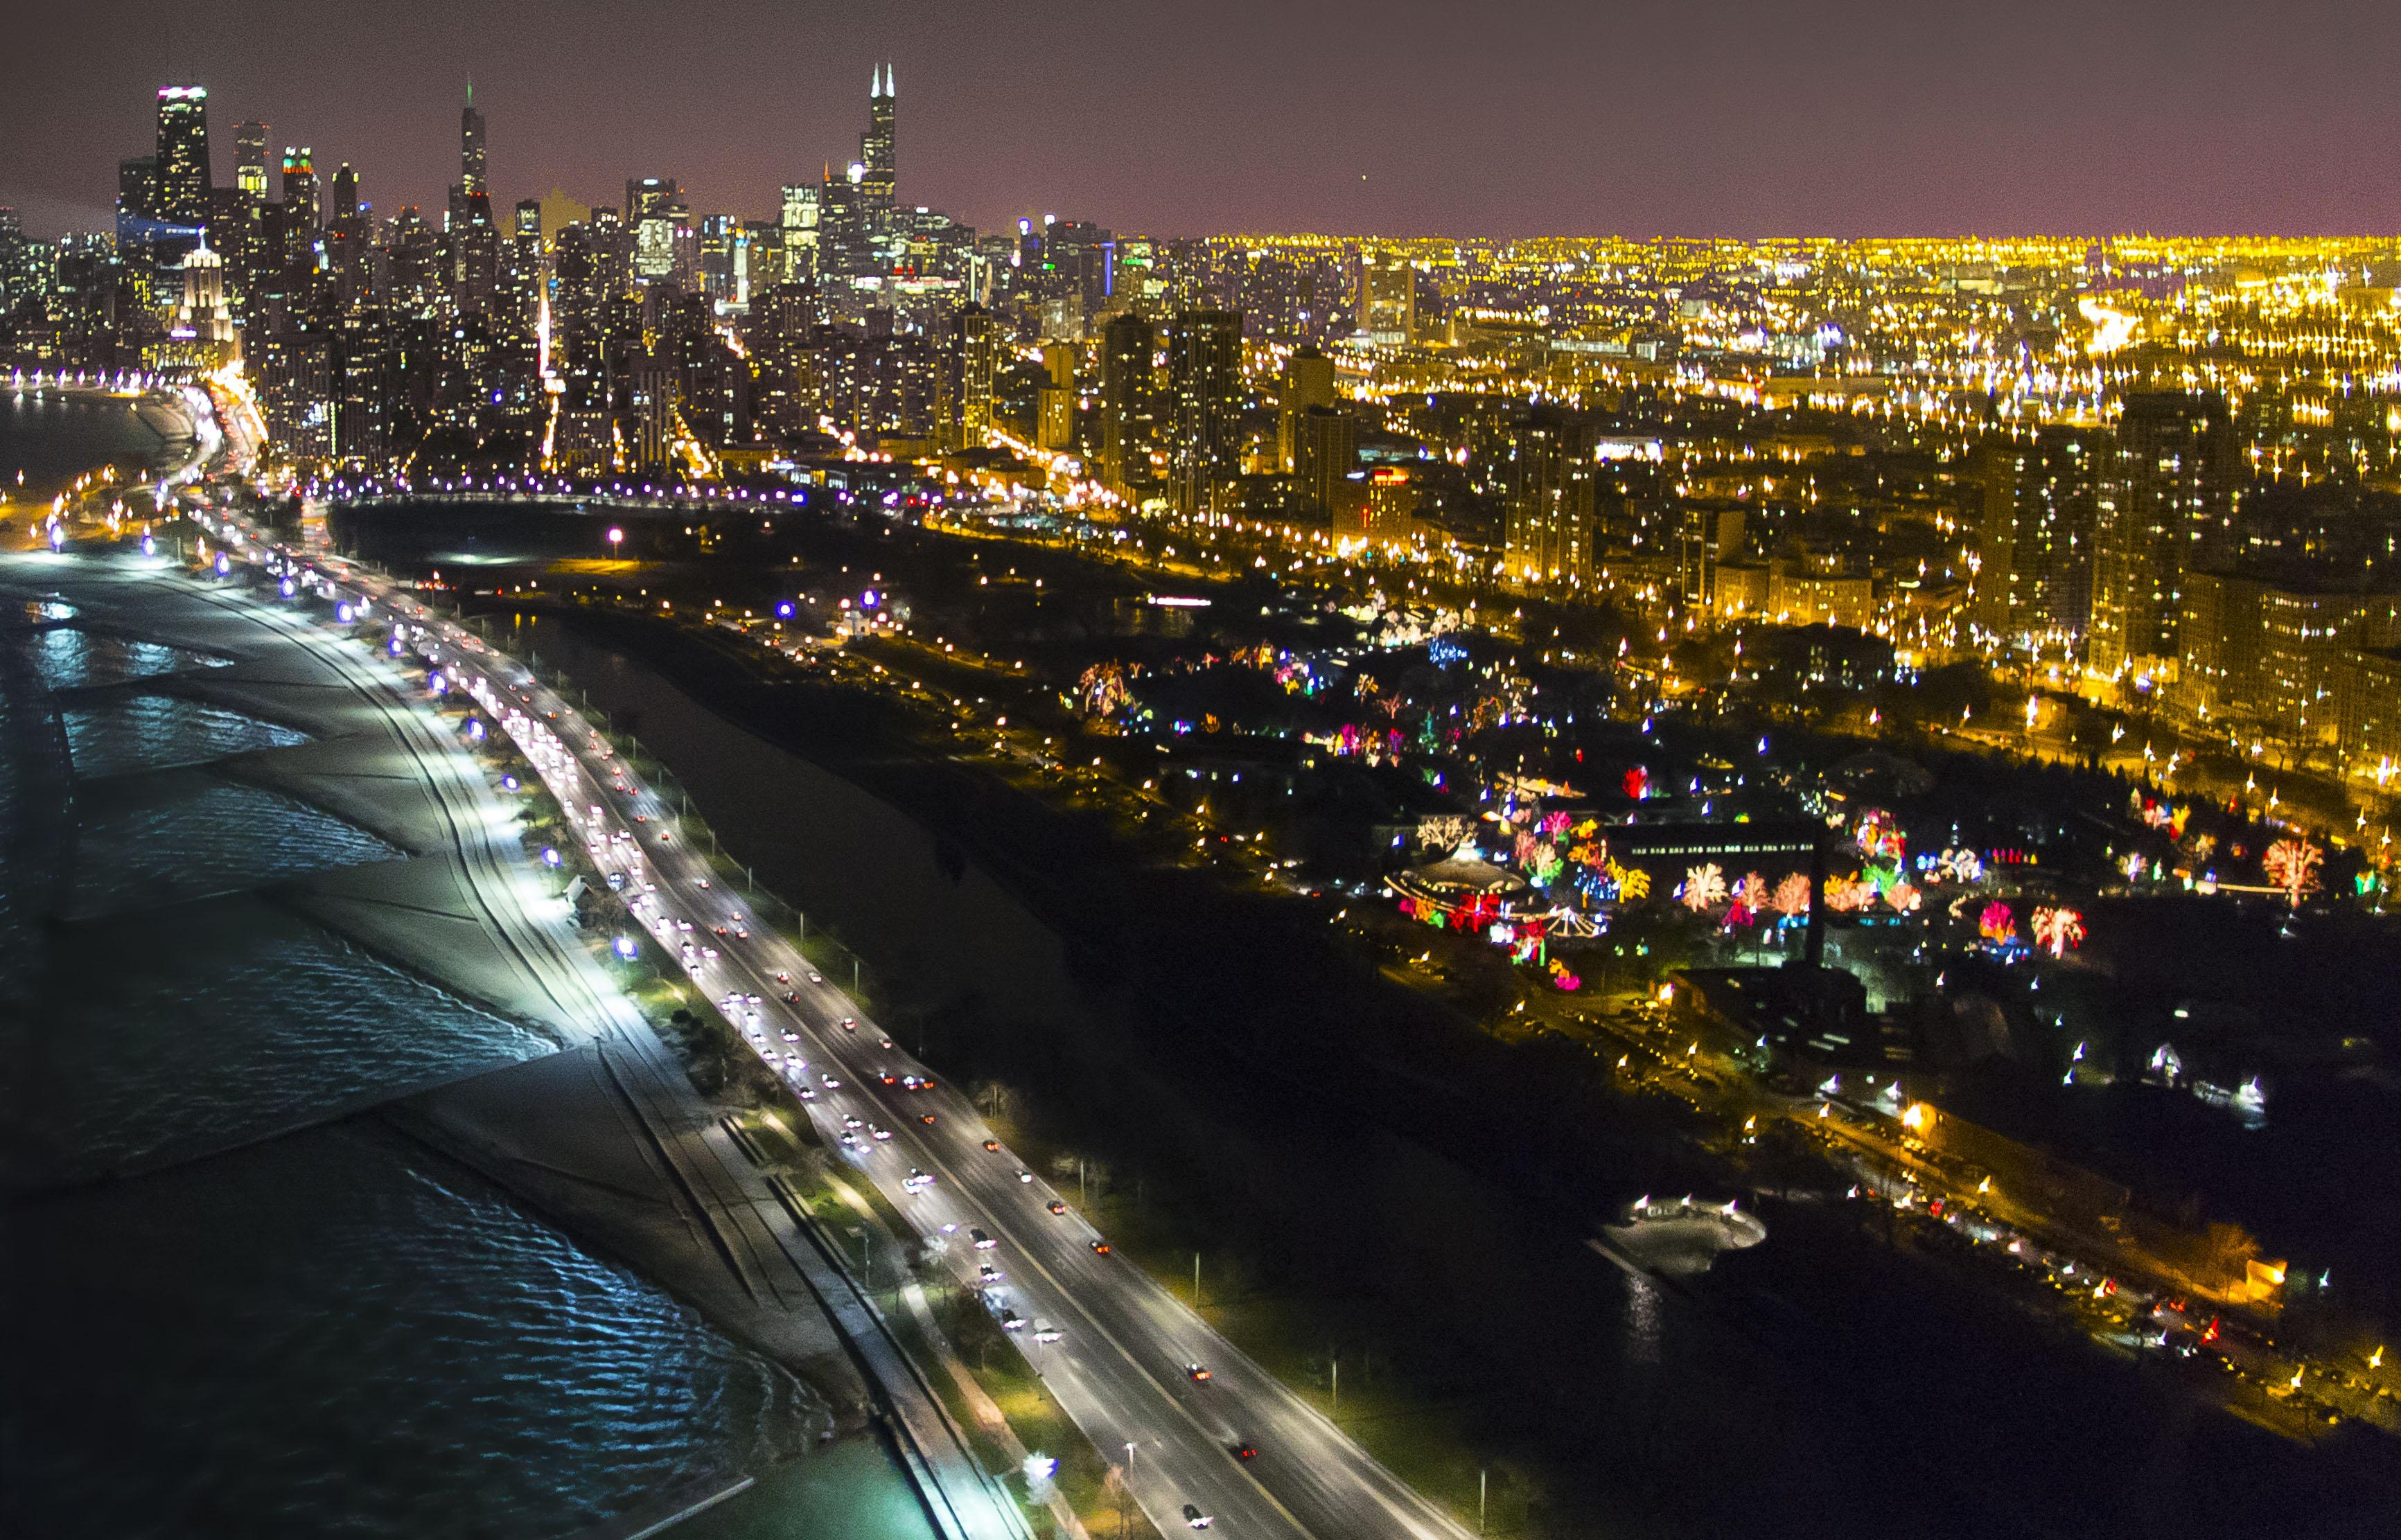 Fly over the city for illuminating views. (Courtesy Chicago Helicopter Experience)